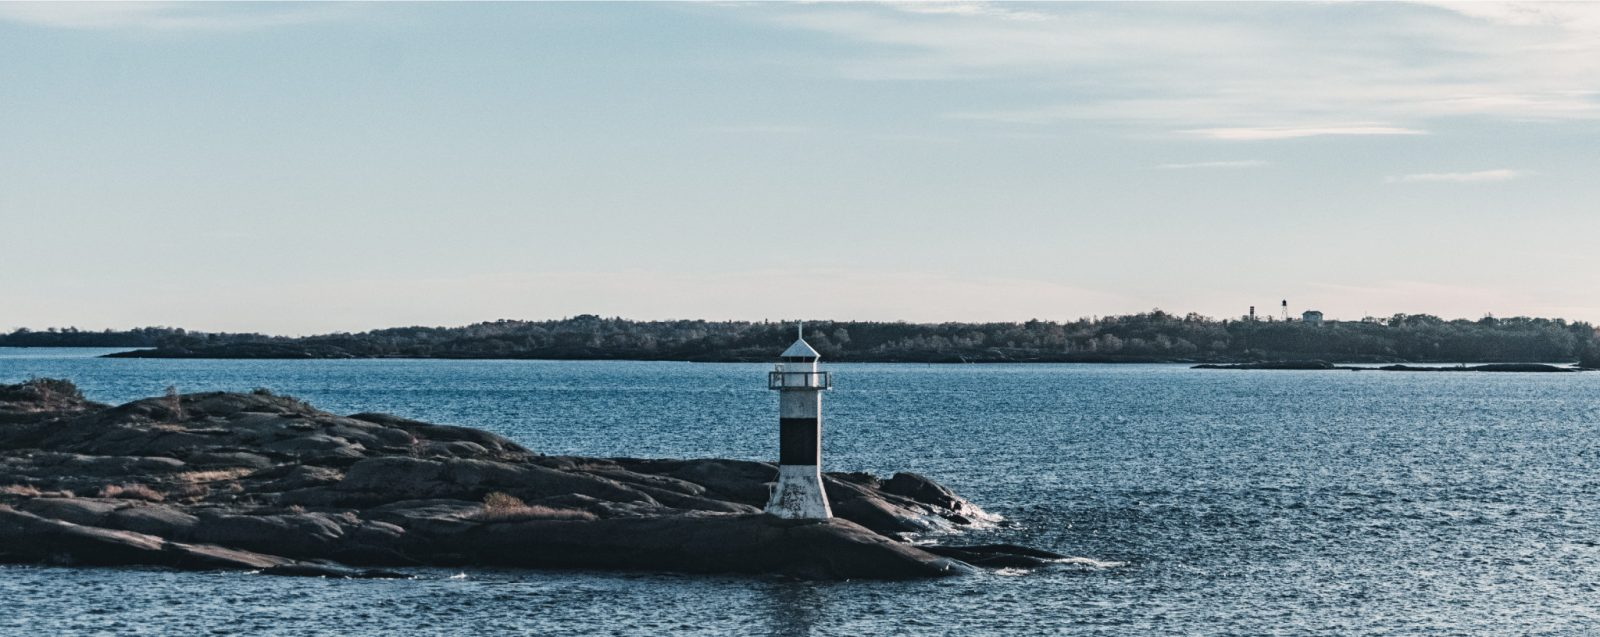 A lighthouse on a rock